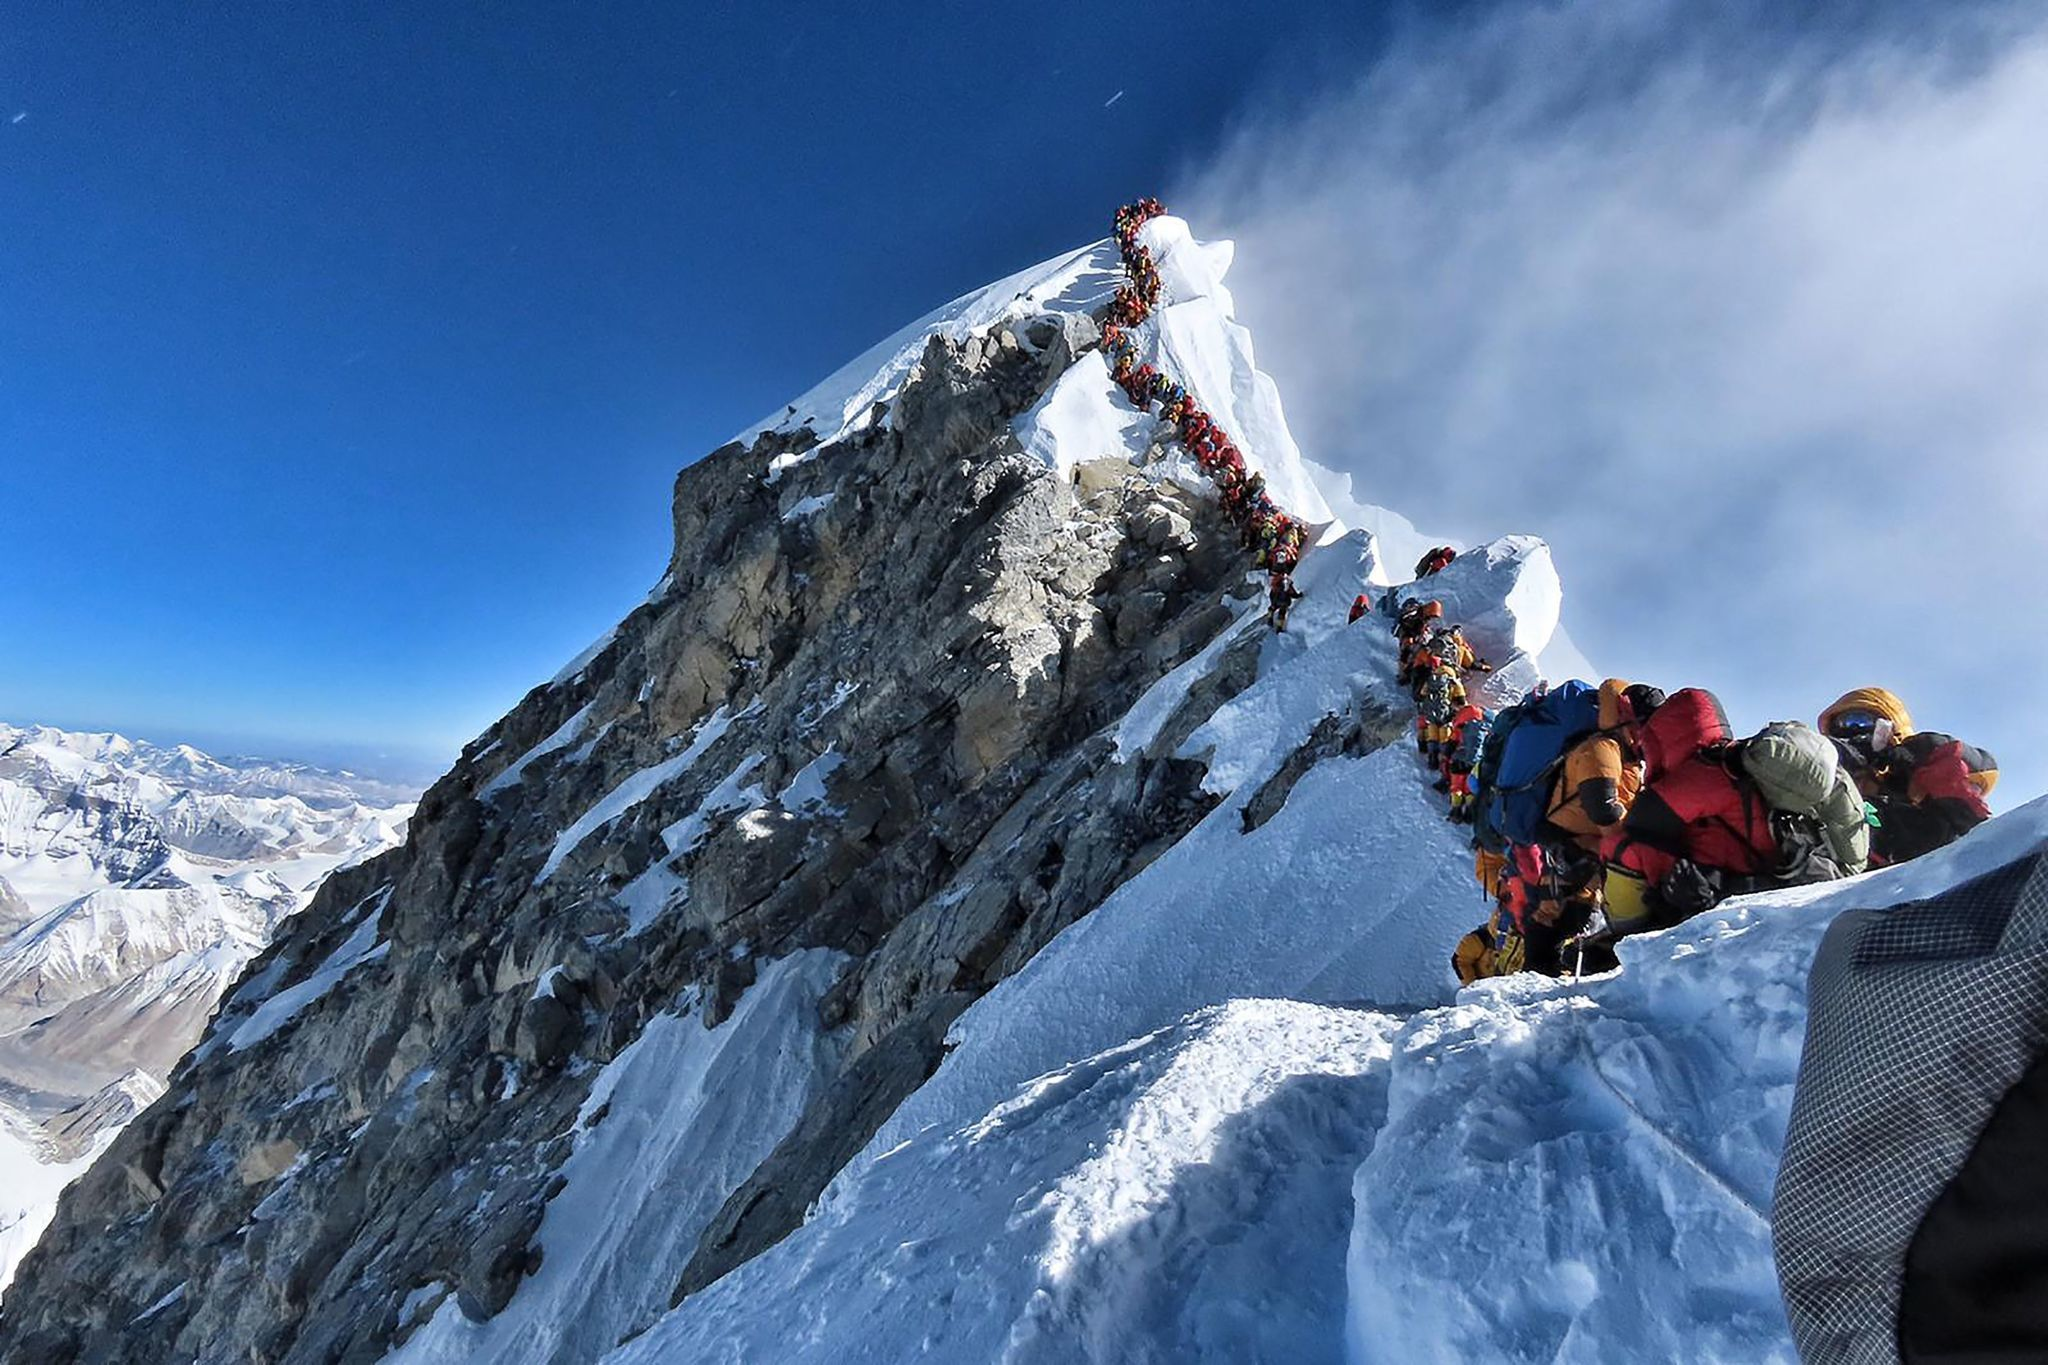 At least 5 dead on Mount Everest after human traffic jam near summit